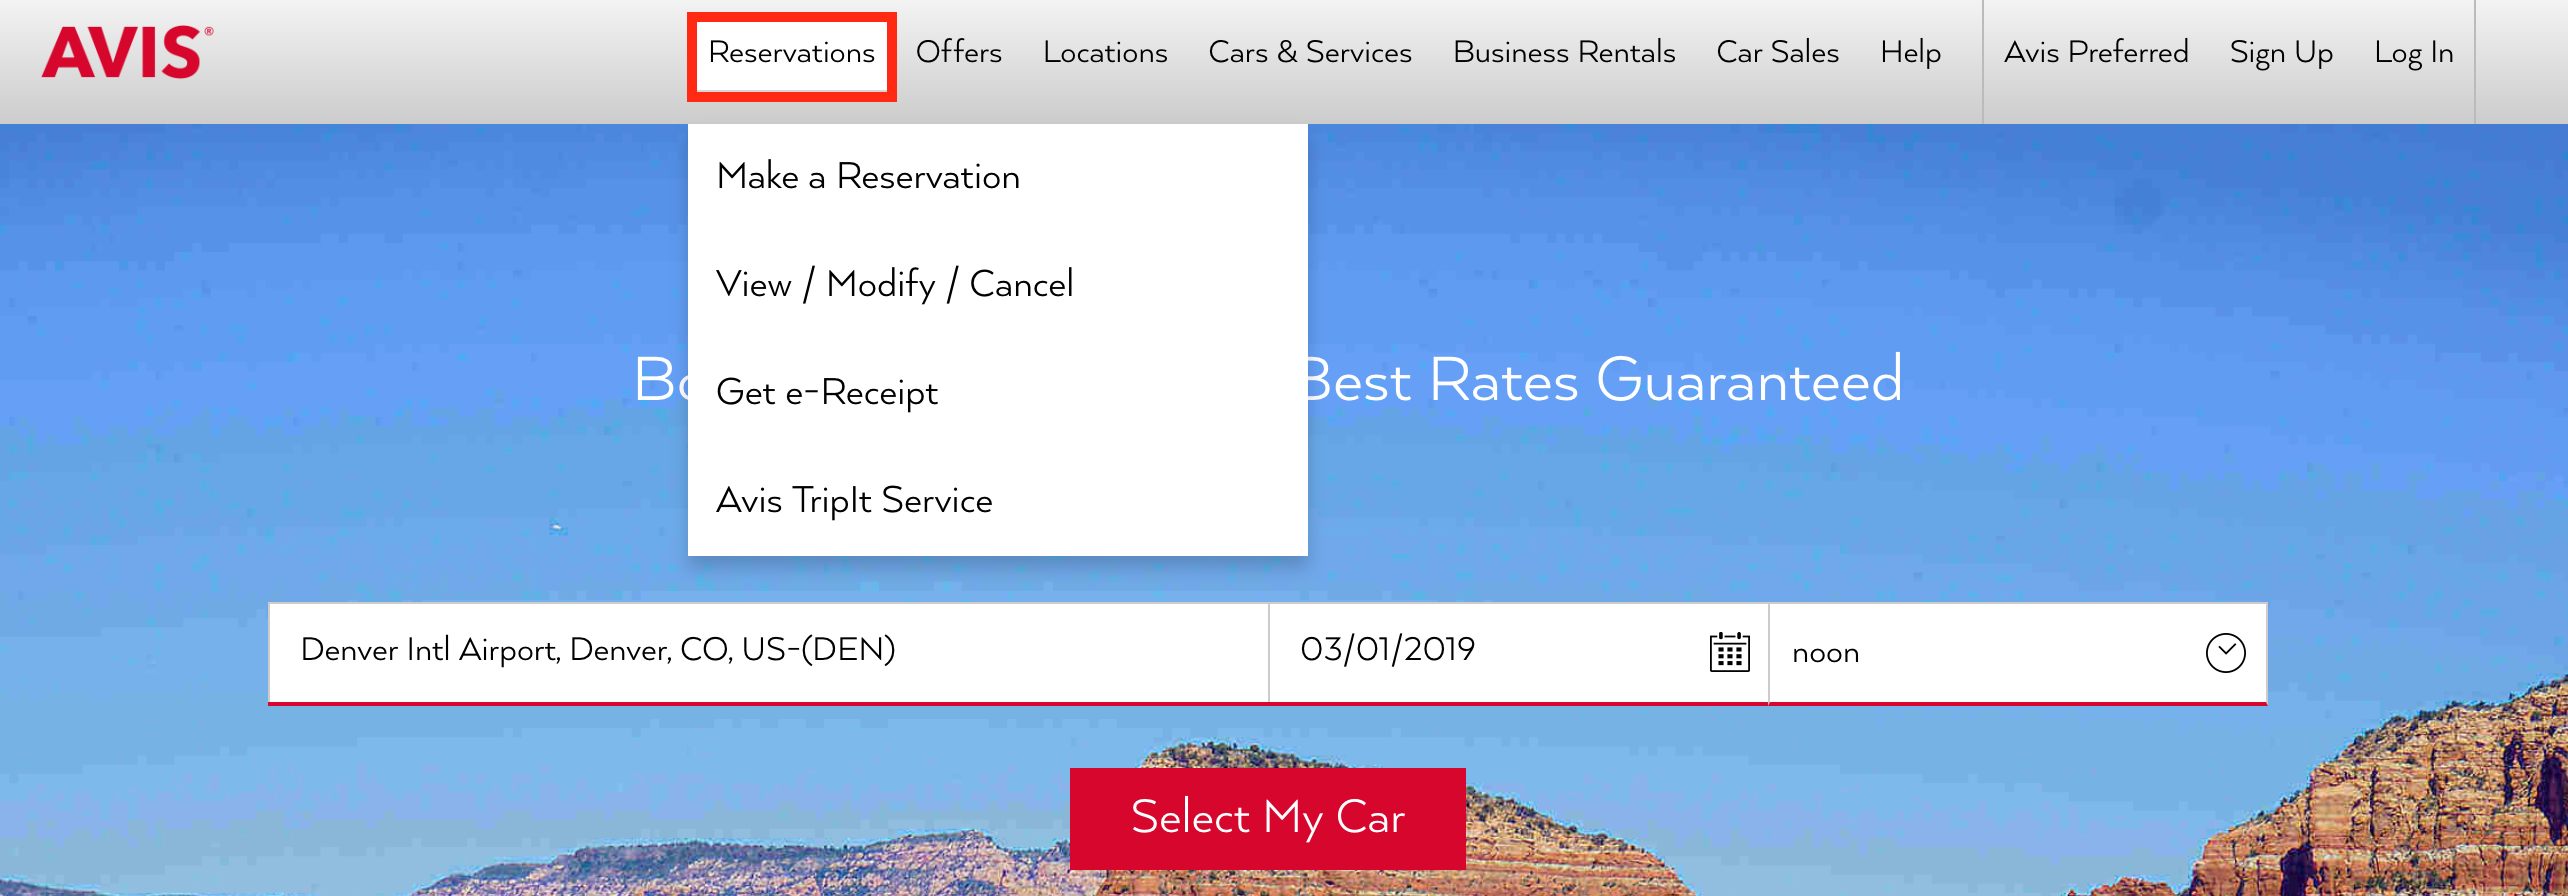 The Ultimate Guide to The Avis Preferred Car Rental Program